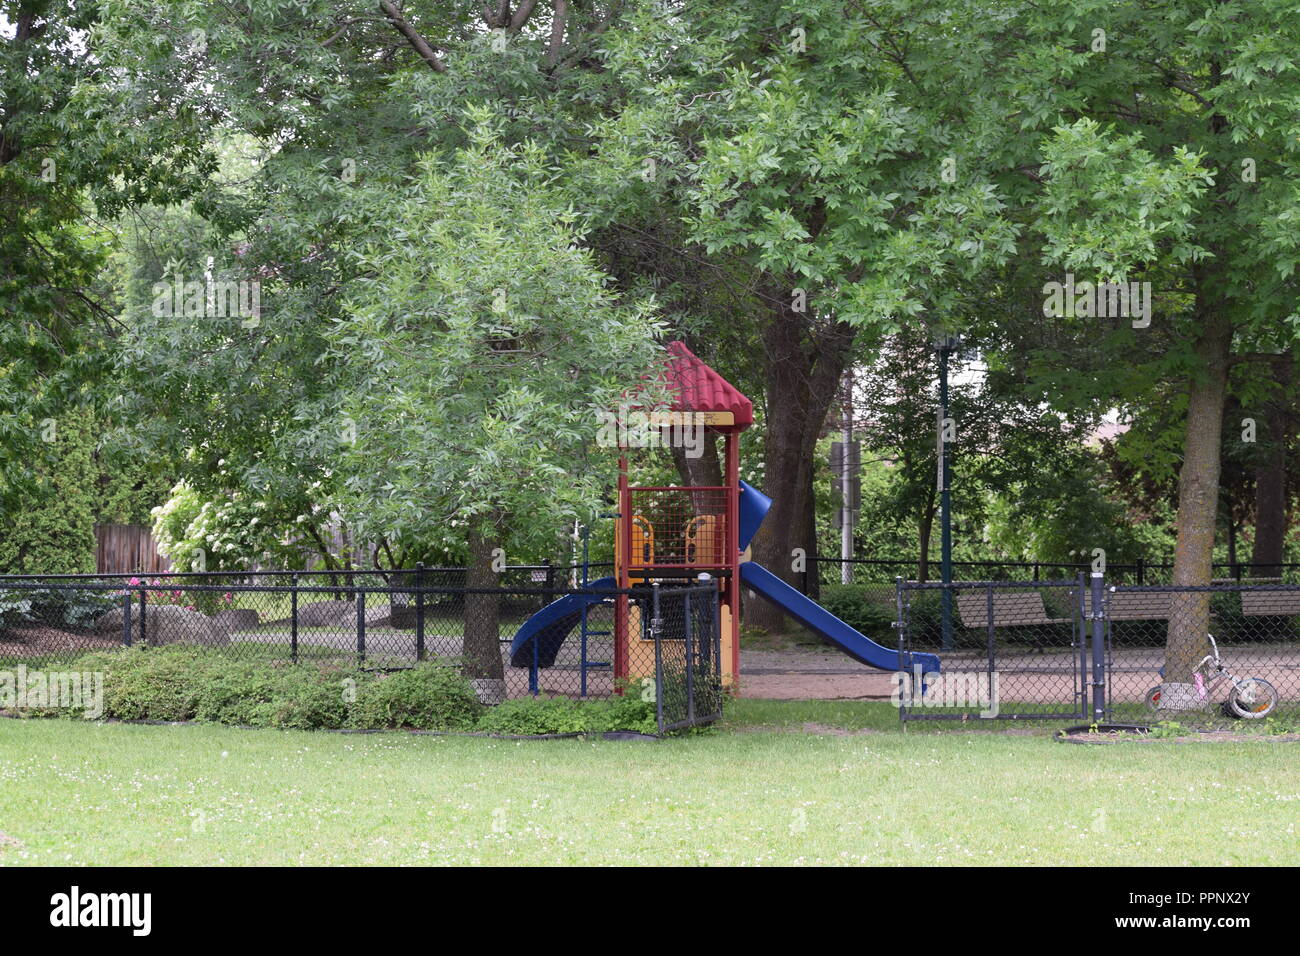 Deserted playground in Montreal Canada during the summer of 2018 - Stock Image